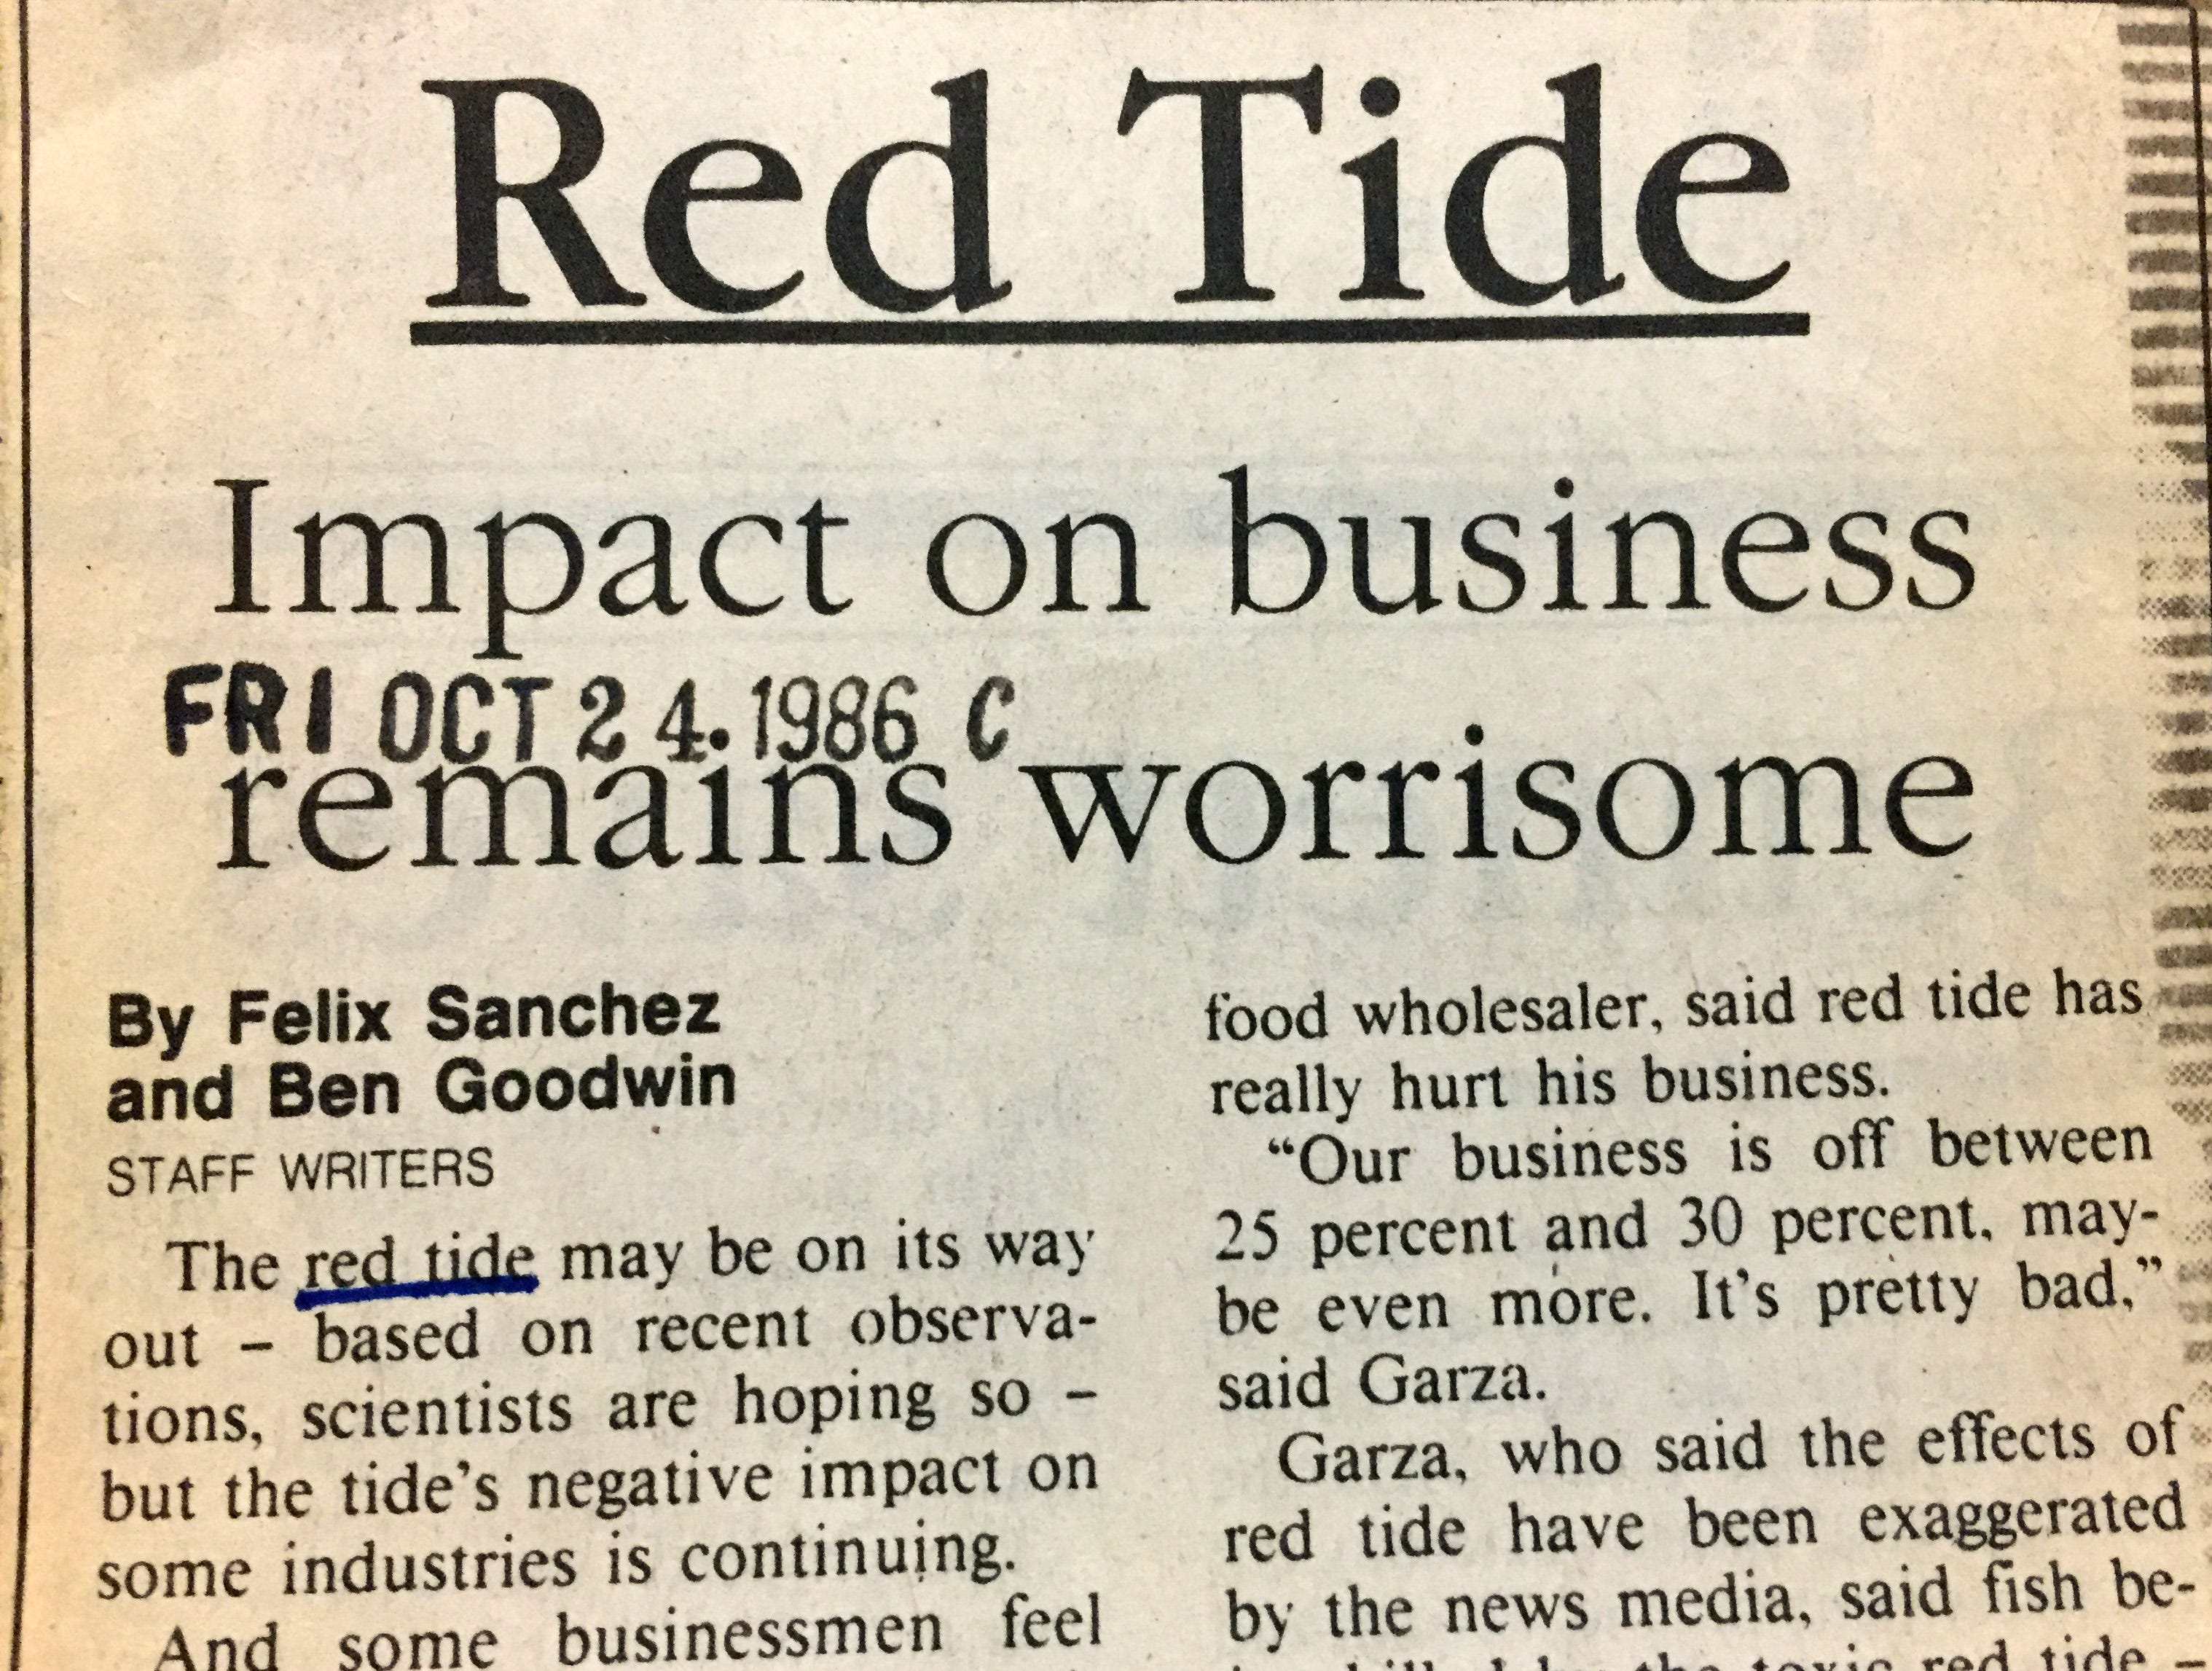 A red-tide early warning system may not help businesses prepare for a bloom.